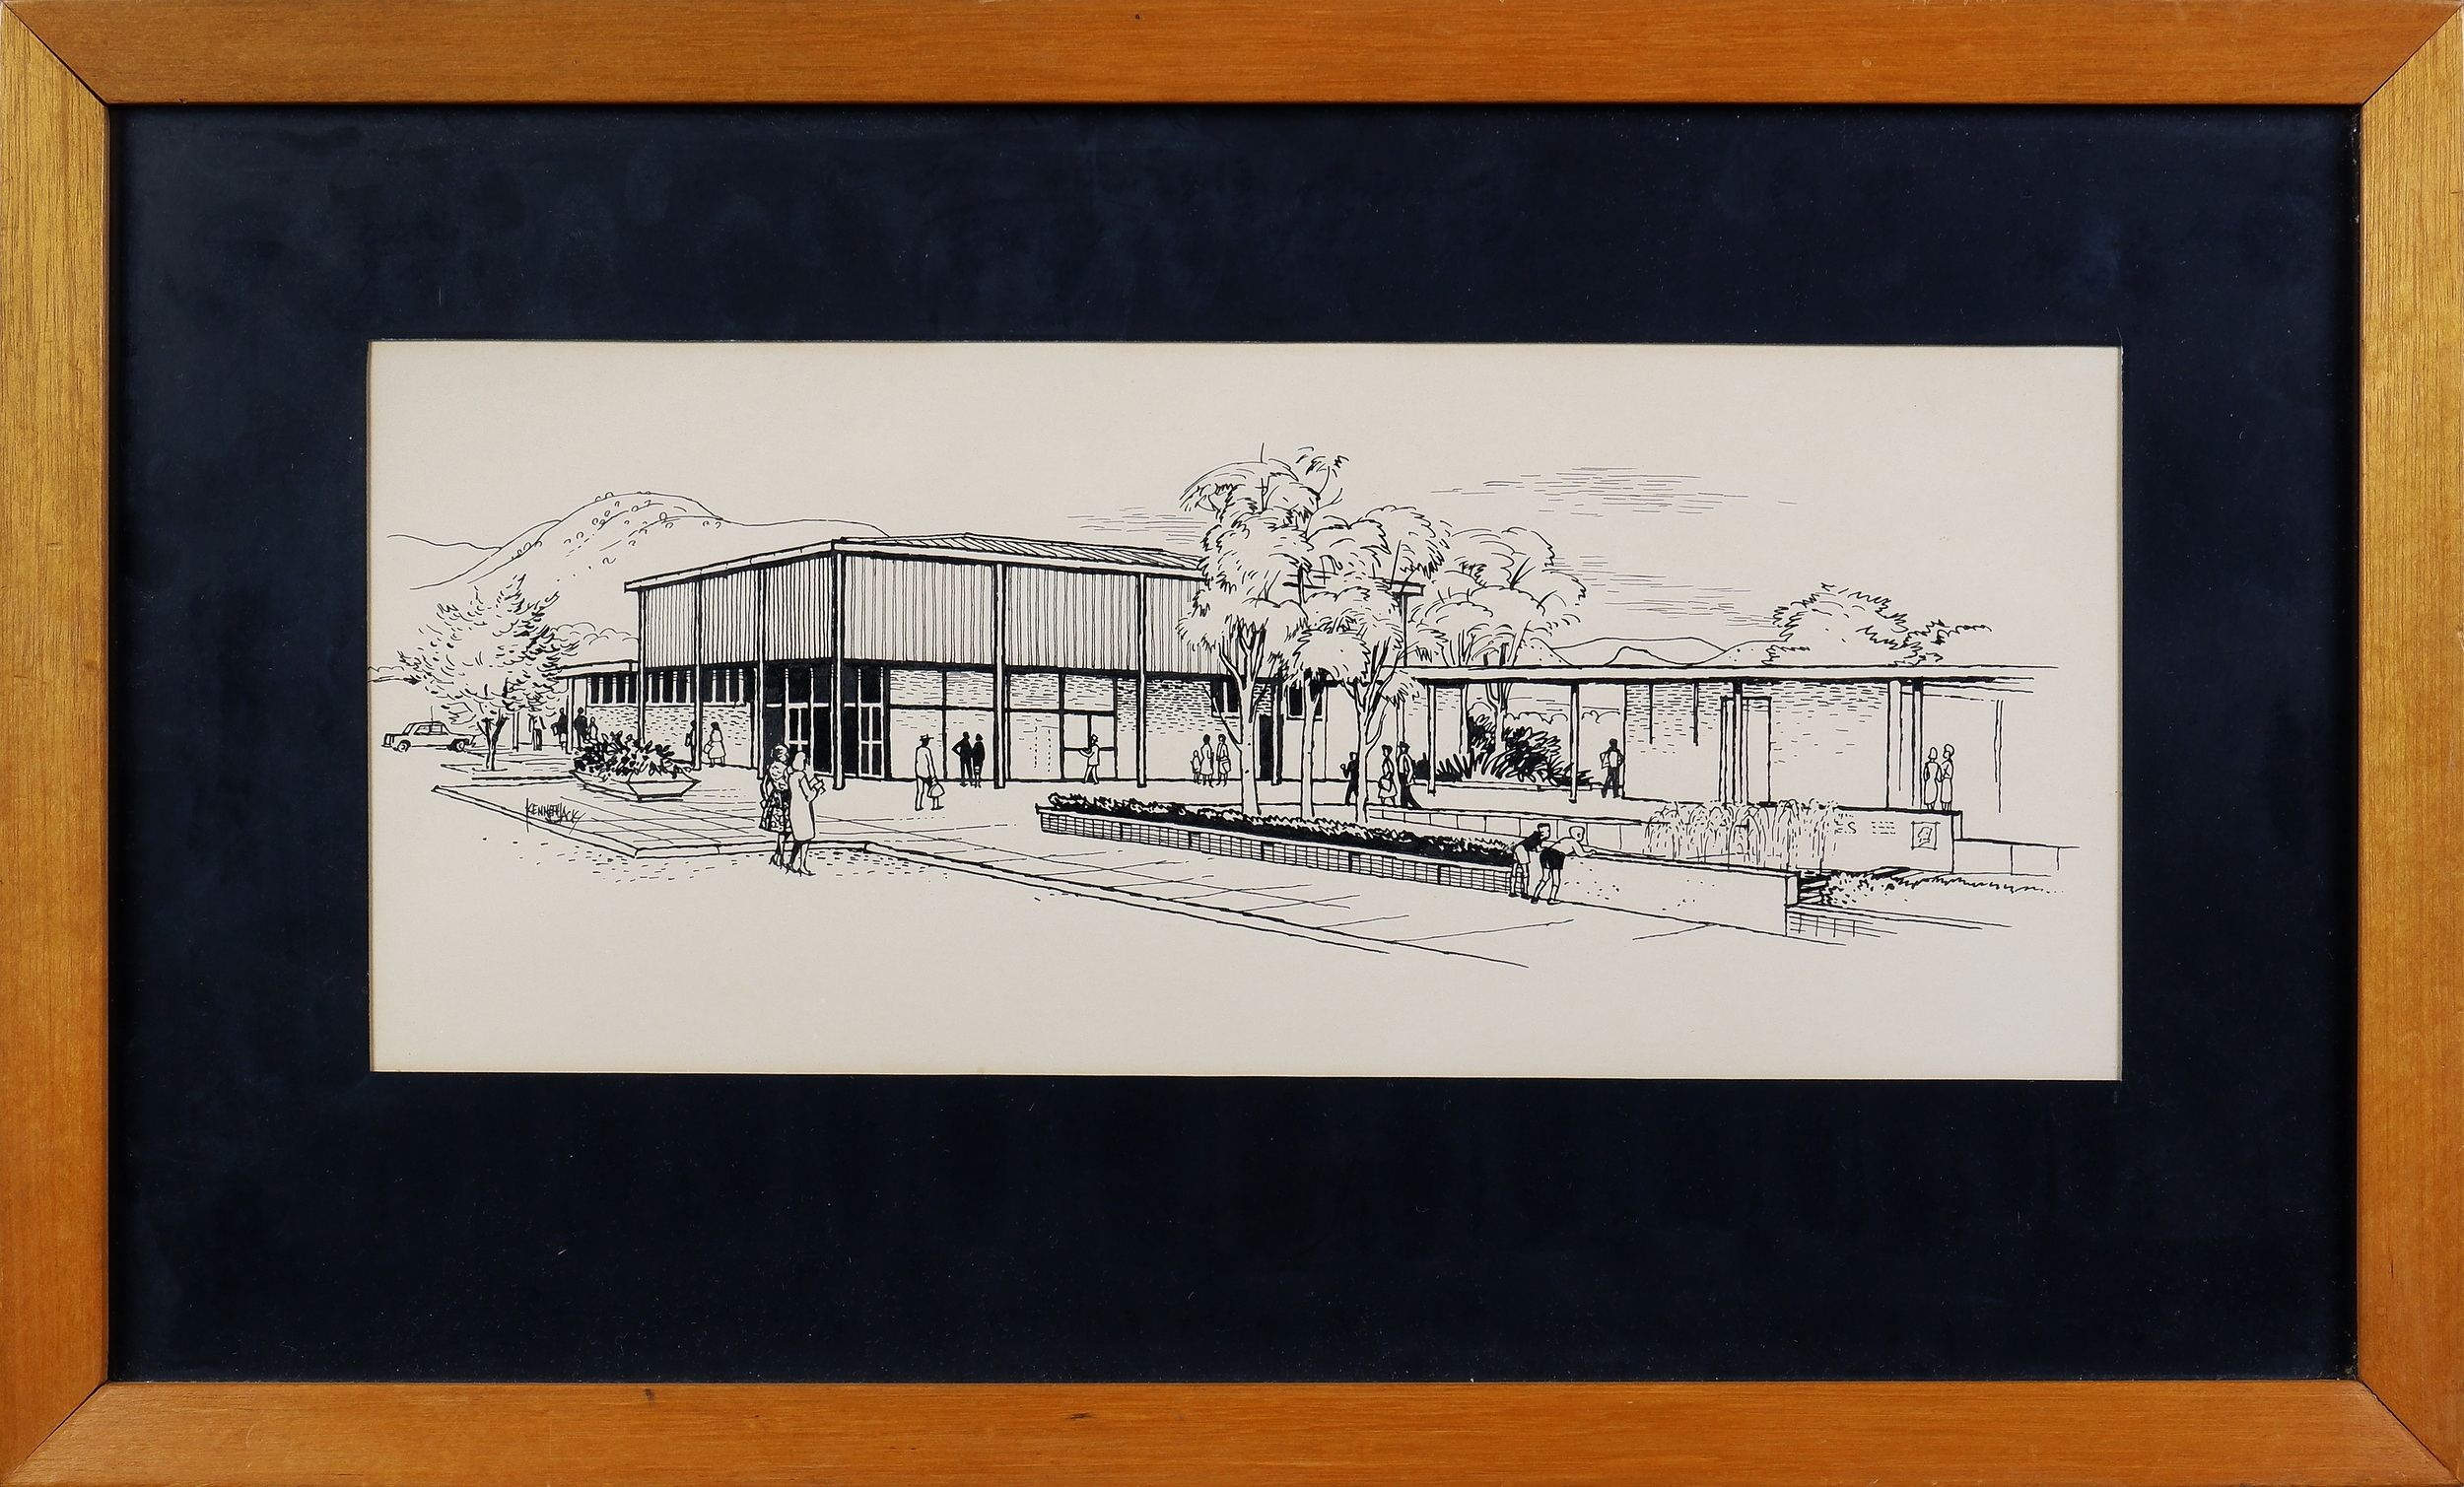 'Kenneth Jack (1924-2006), Civic Square, Canberra, Pen and Ink on Paper'